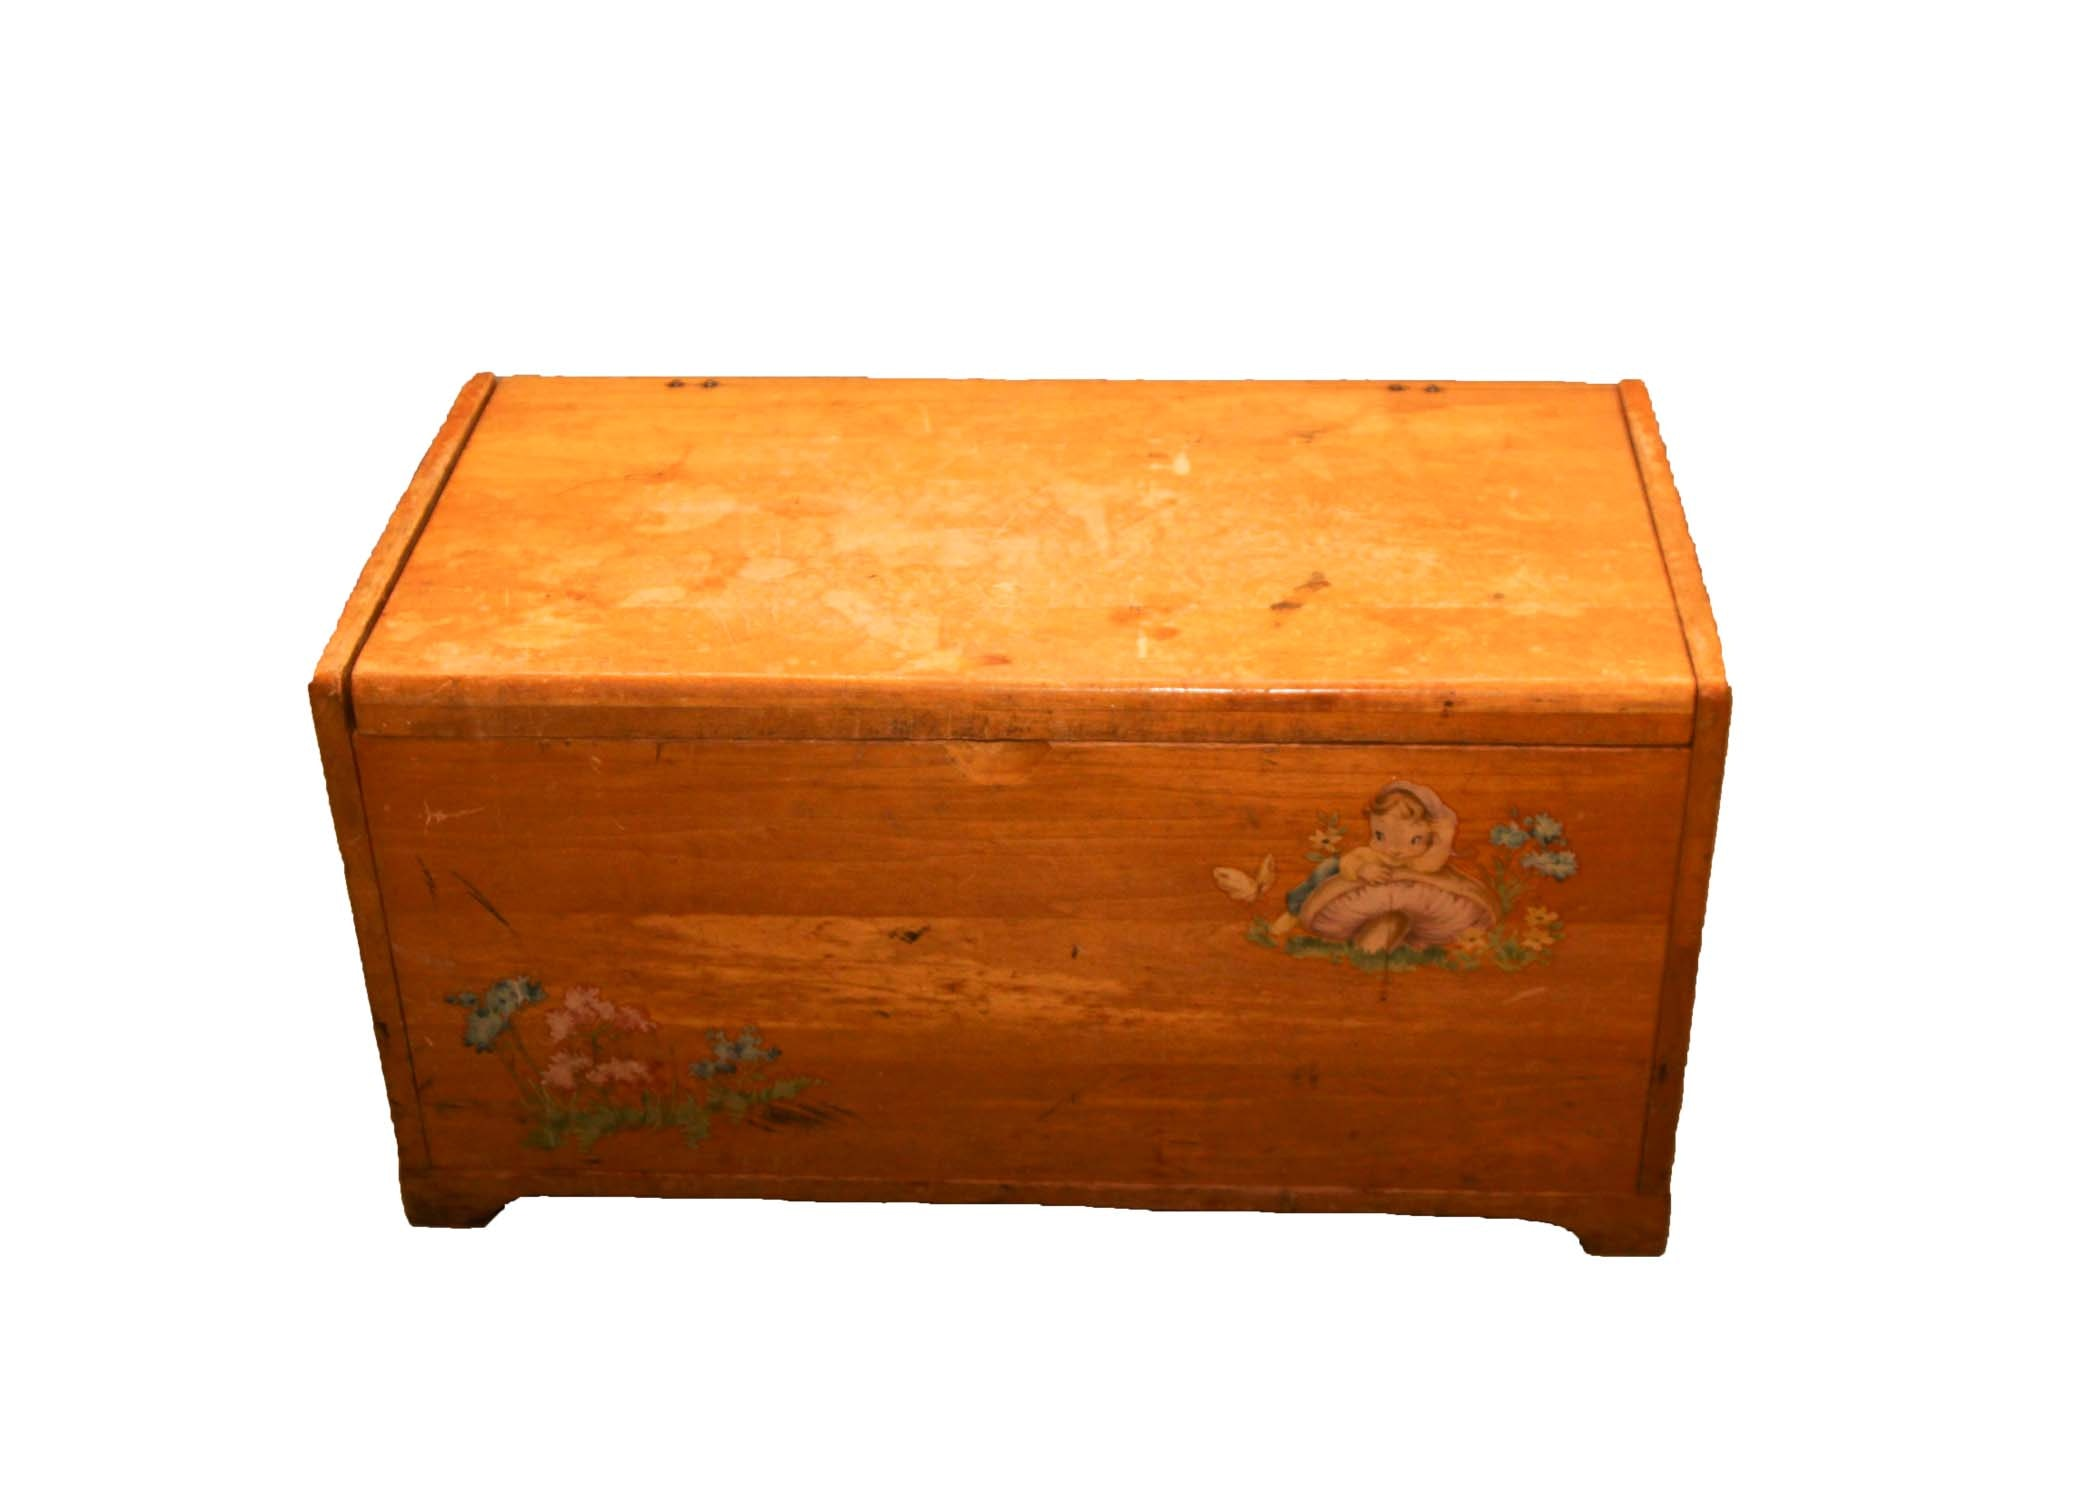 Vintage Wooden Toy Chest